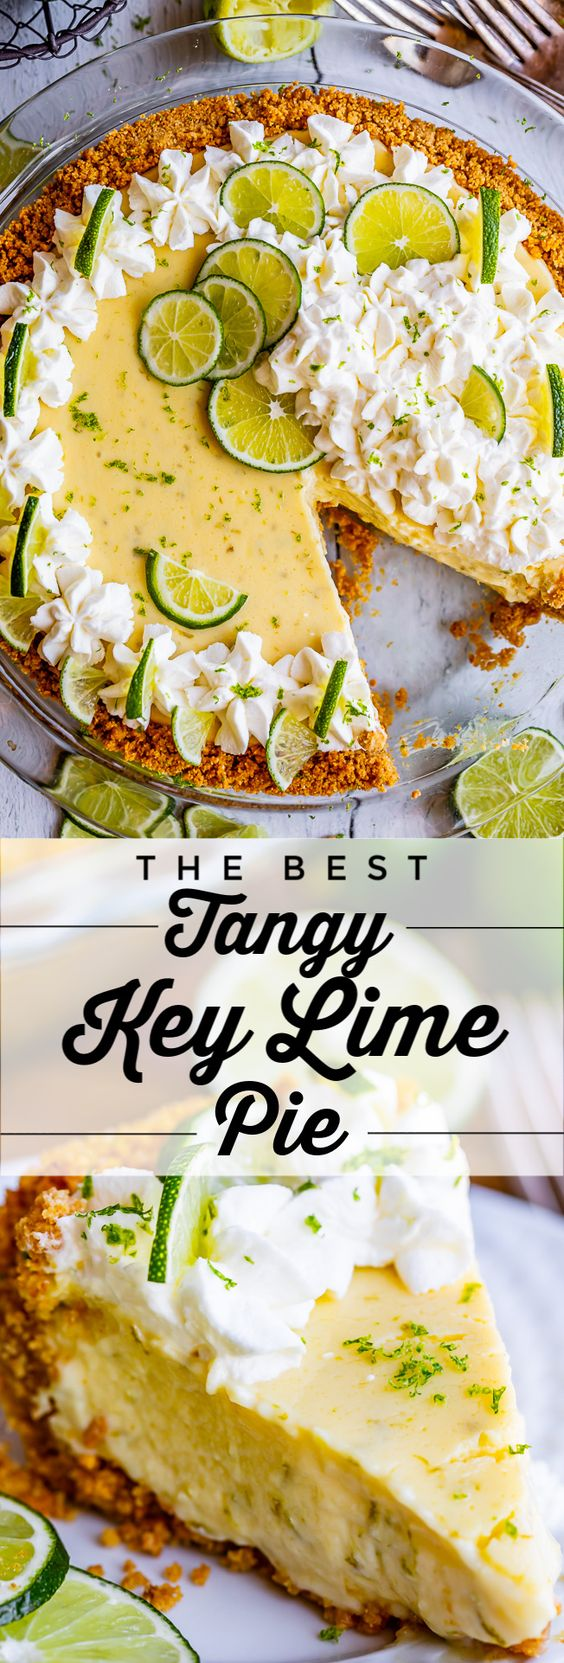 The Best Zesty Key Lime Pie Recipe from The Food Charlatan